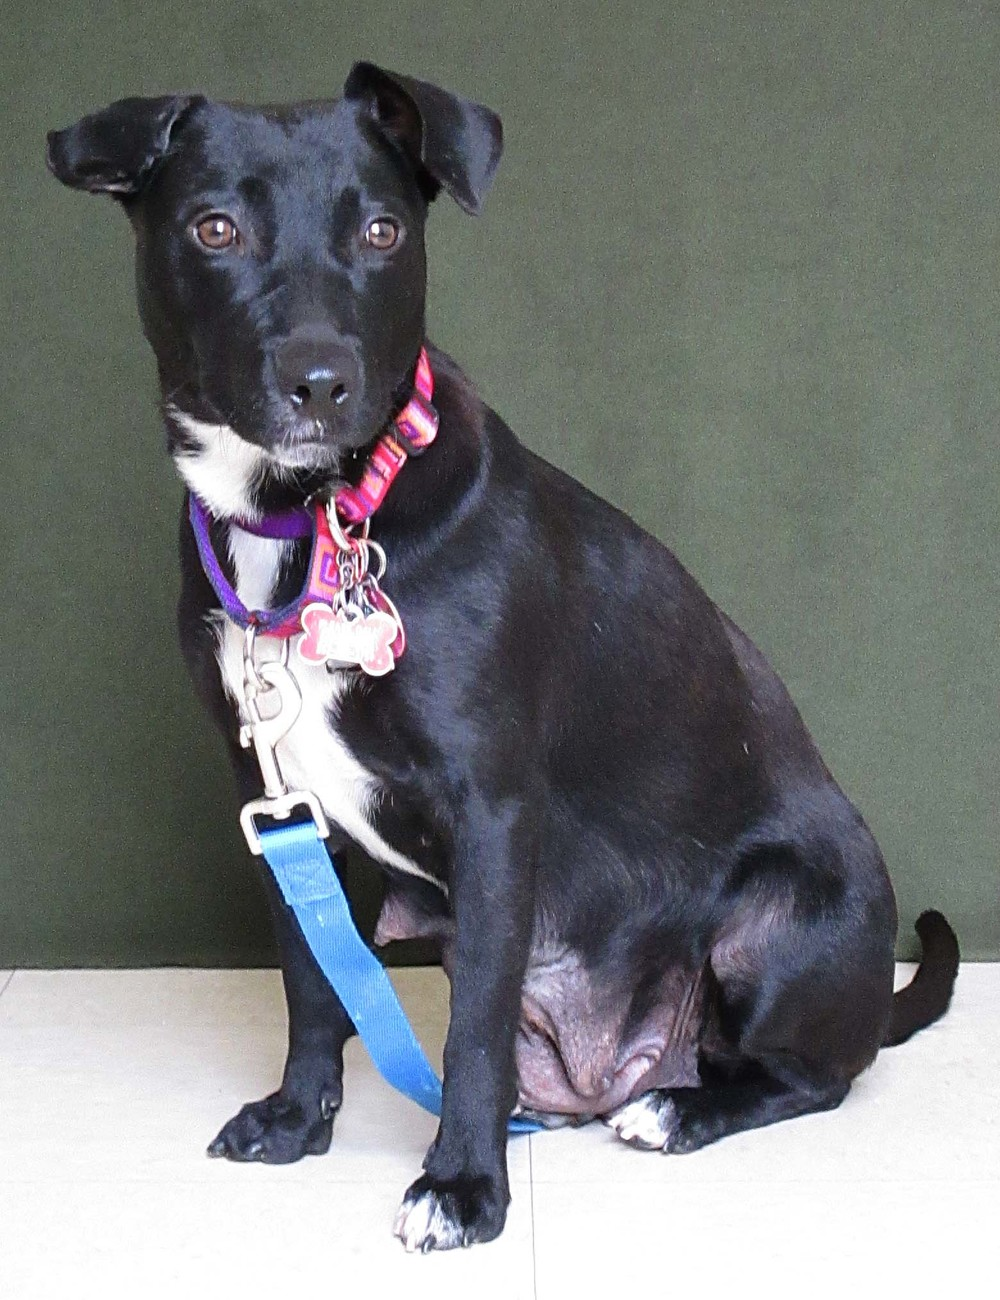 Kia is a 3 year old lab mix. She is sensitive to new people and handling so she would do well in a home with older children. She is very prey driven, so she can not go to a home with a cat. She is good with other dogs. Once she bonds to someone, she is very affectionate and loving.